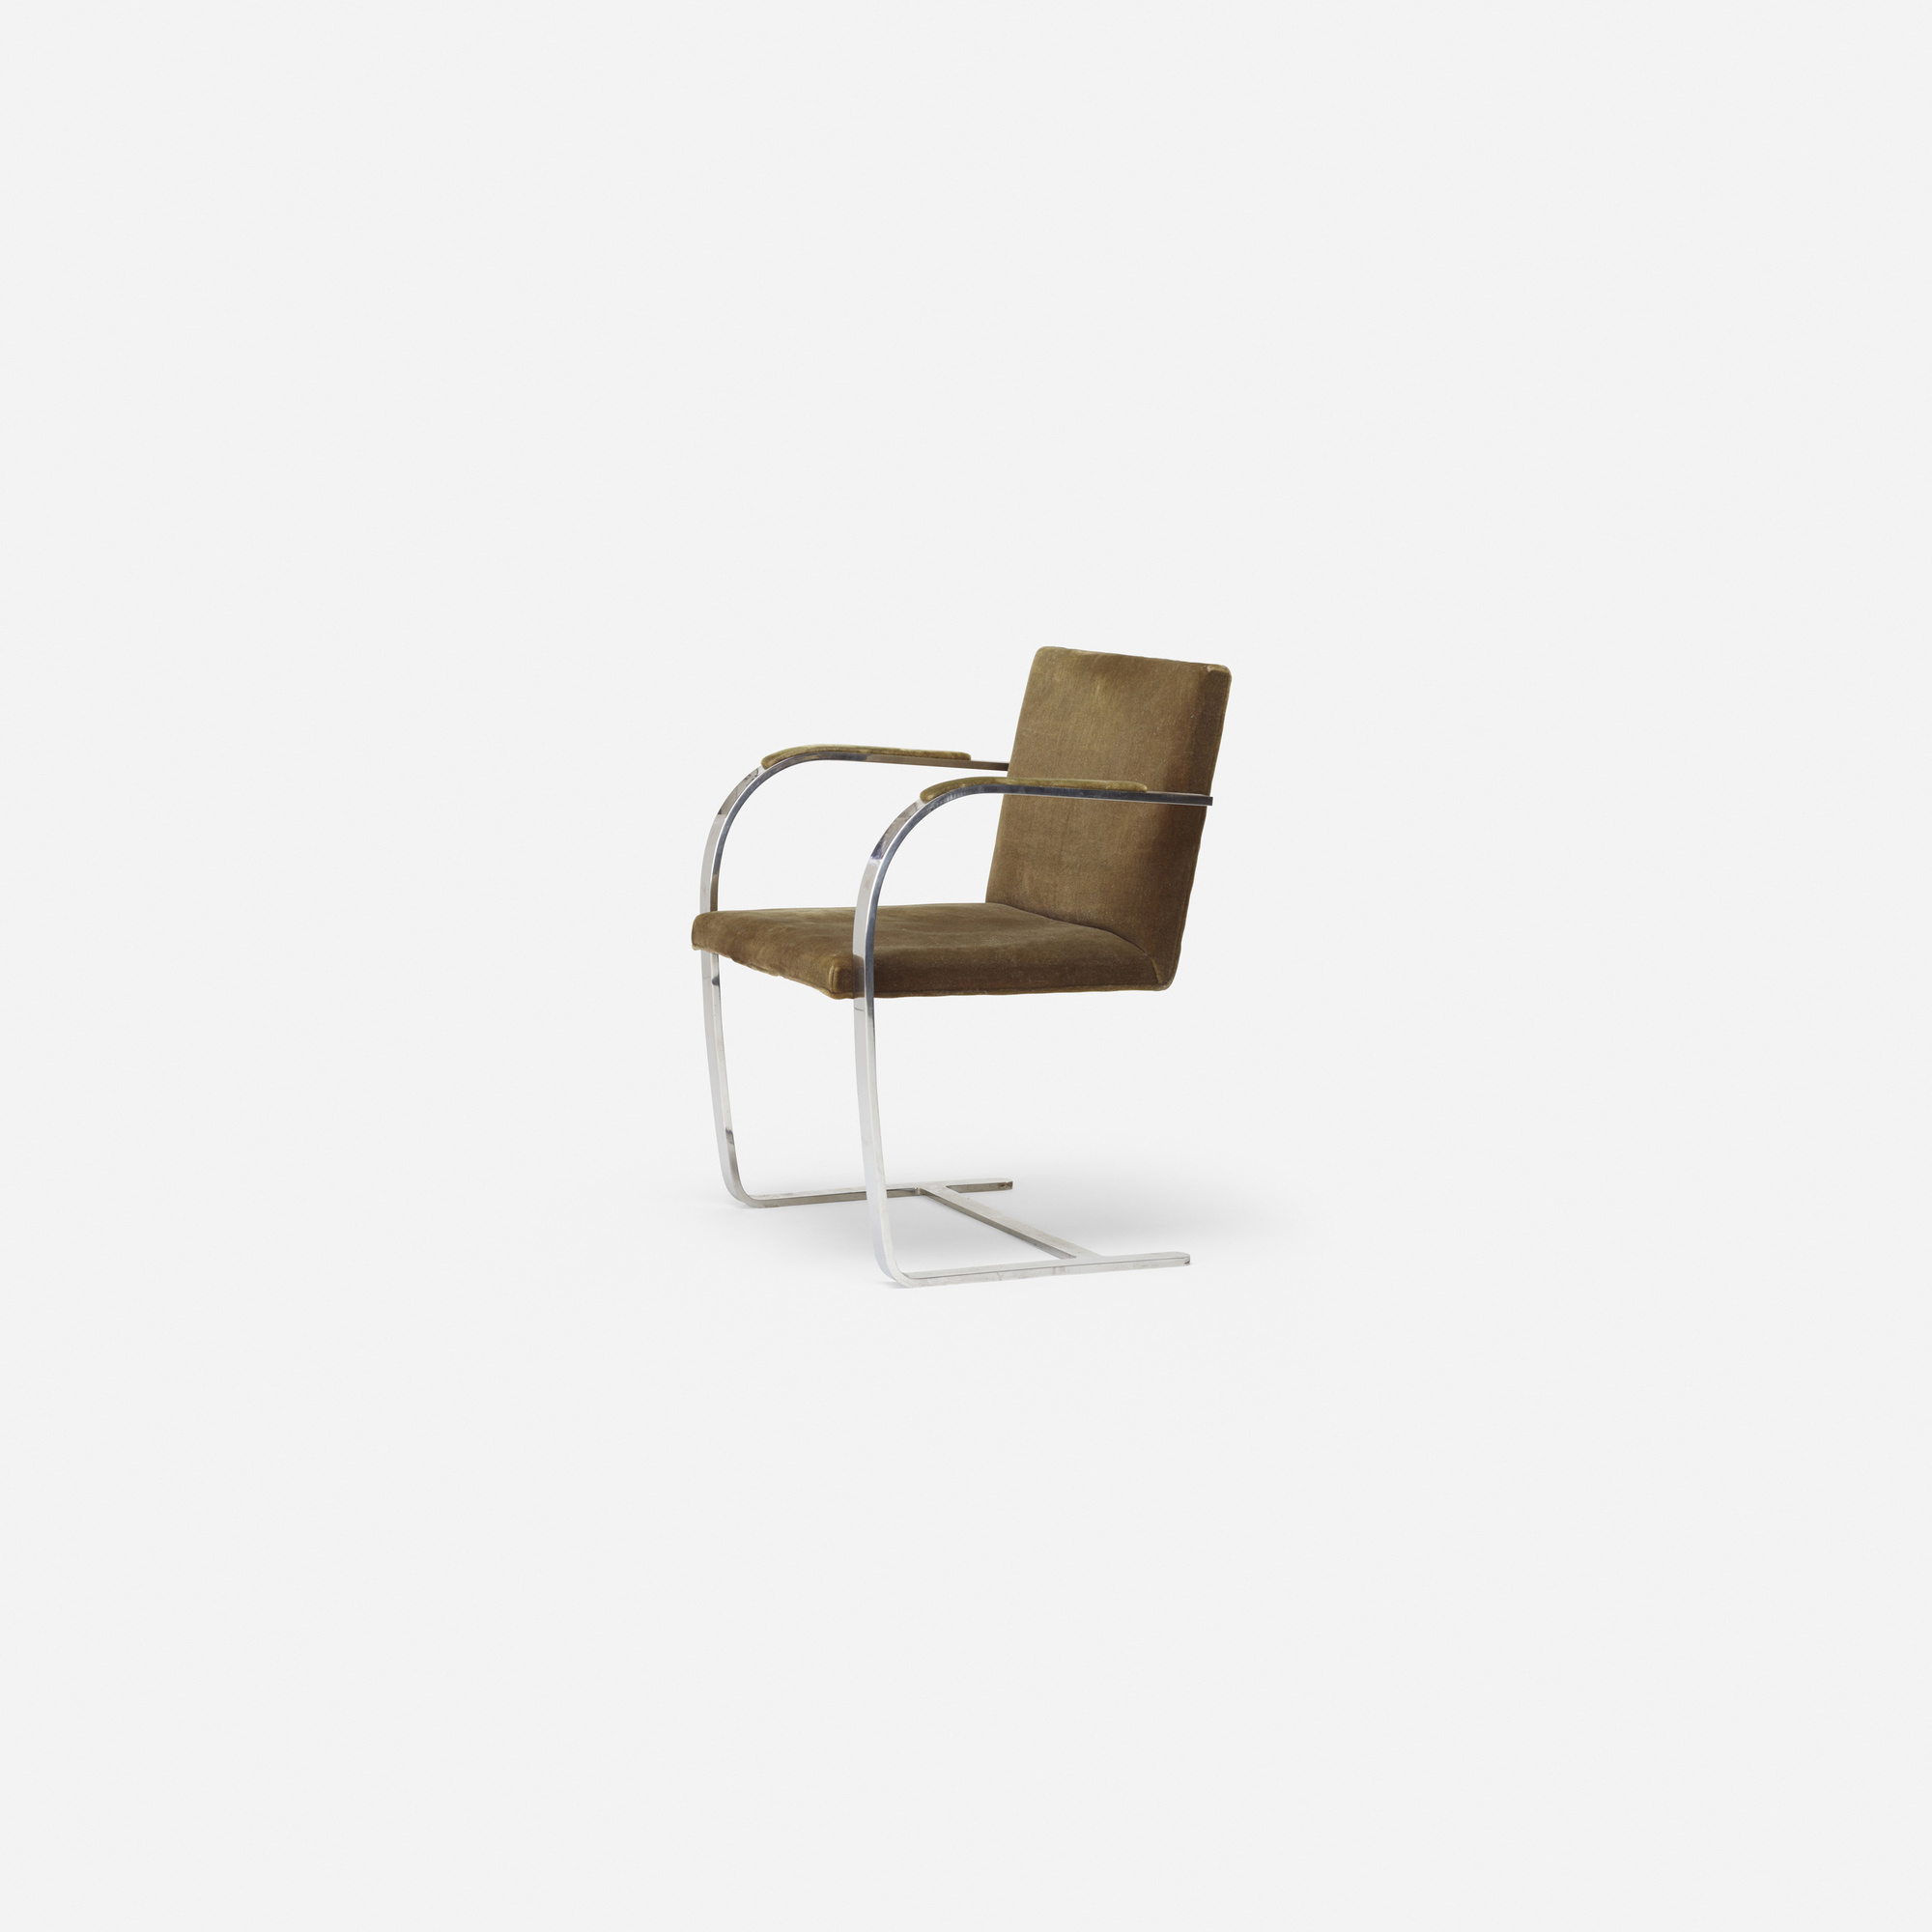 570 Ludwig Mies van der Rohe Brno chair Mass Modern Day 2